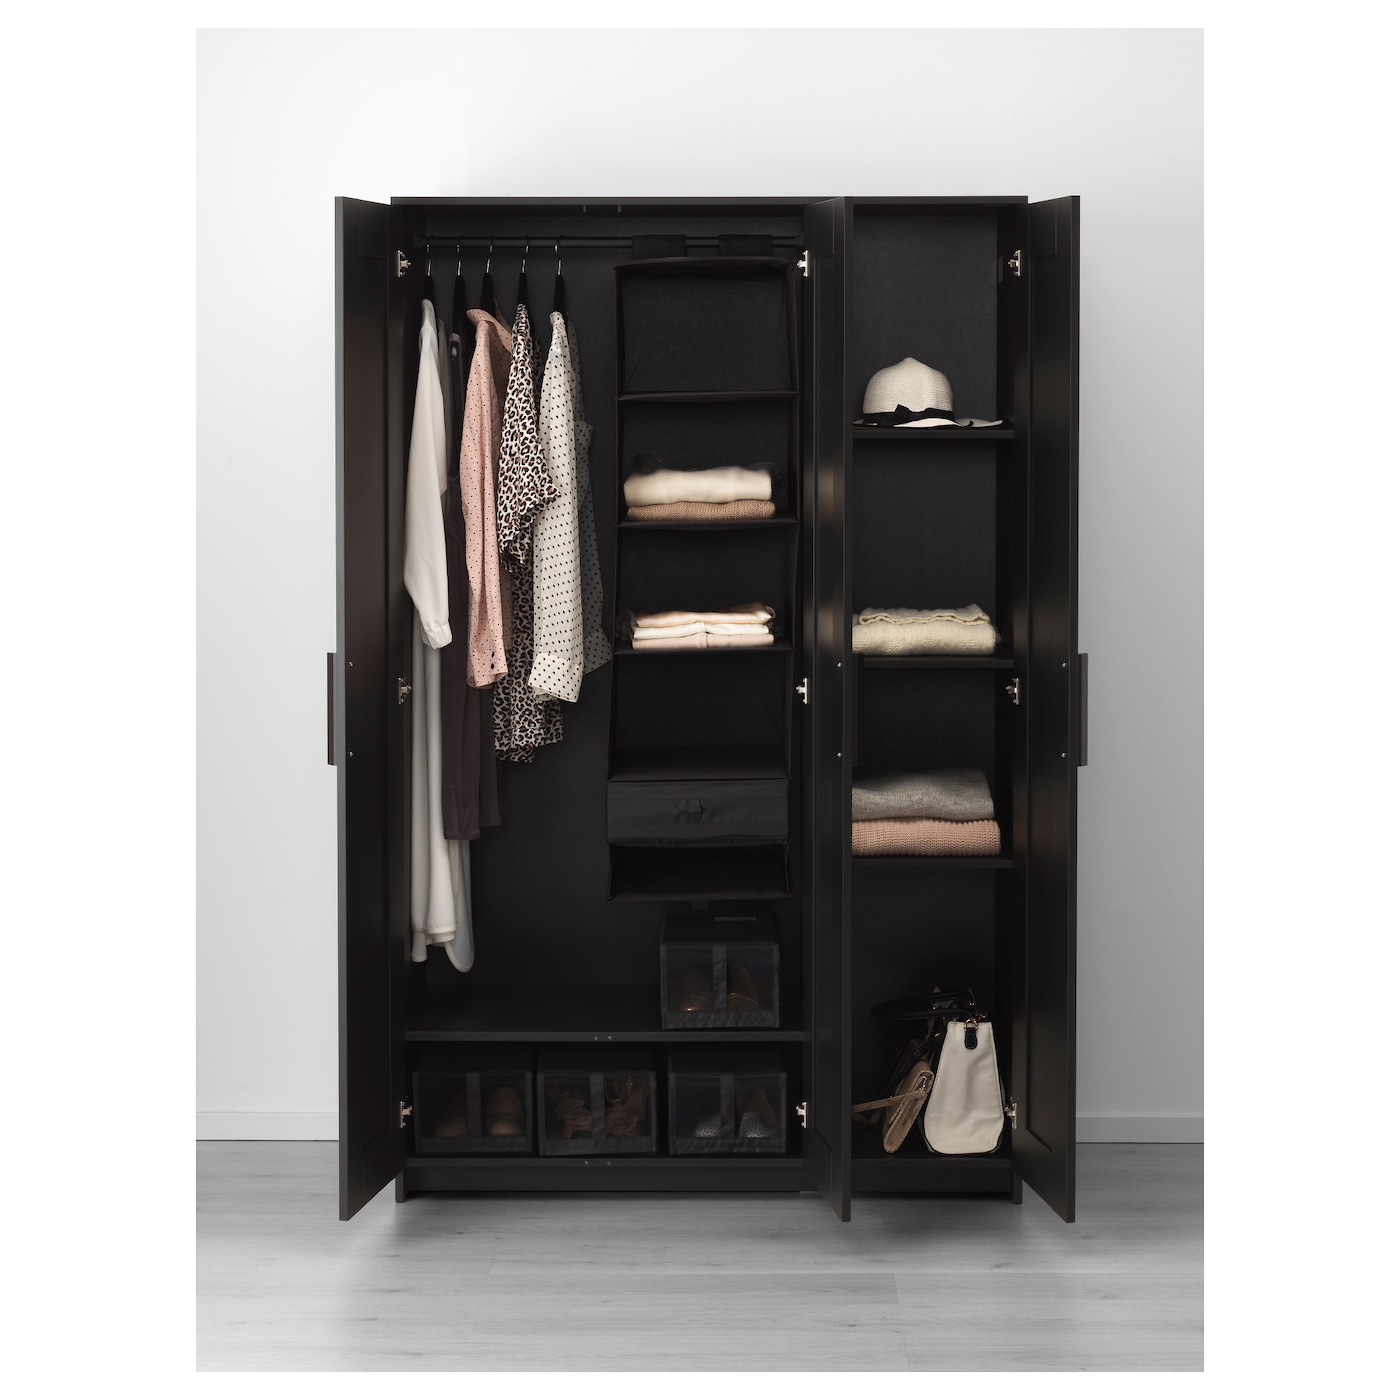 brimnes armoire 3 portes noir 117 x 190 cm ikea. Black Bedroom Furniture Sets. Home Design Ideas